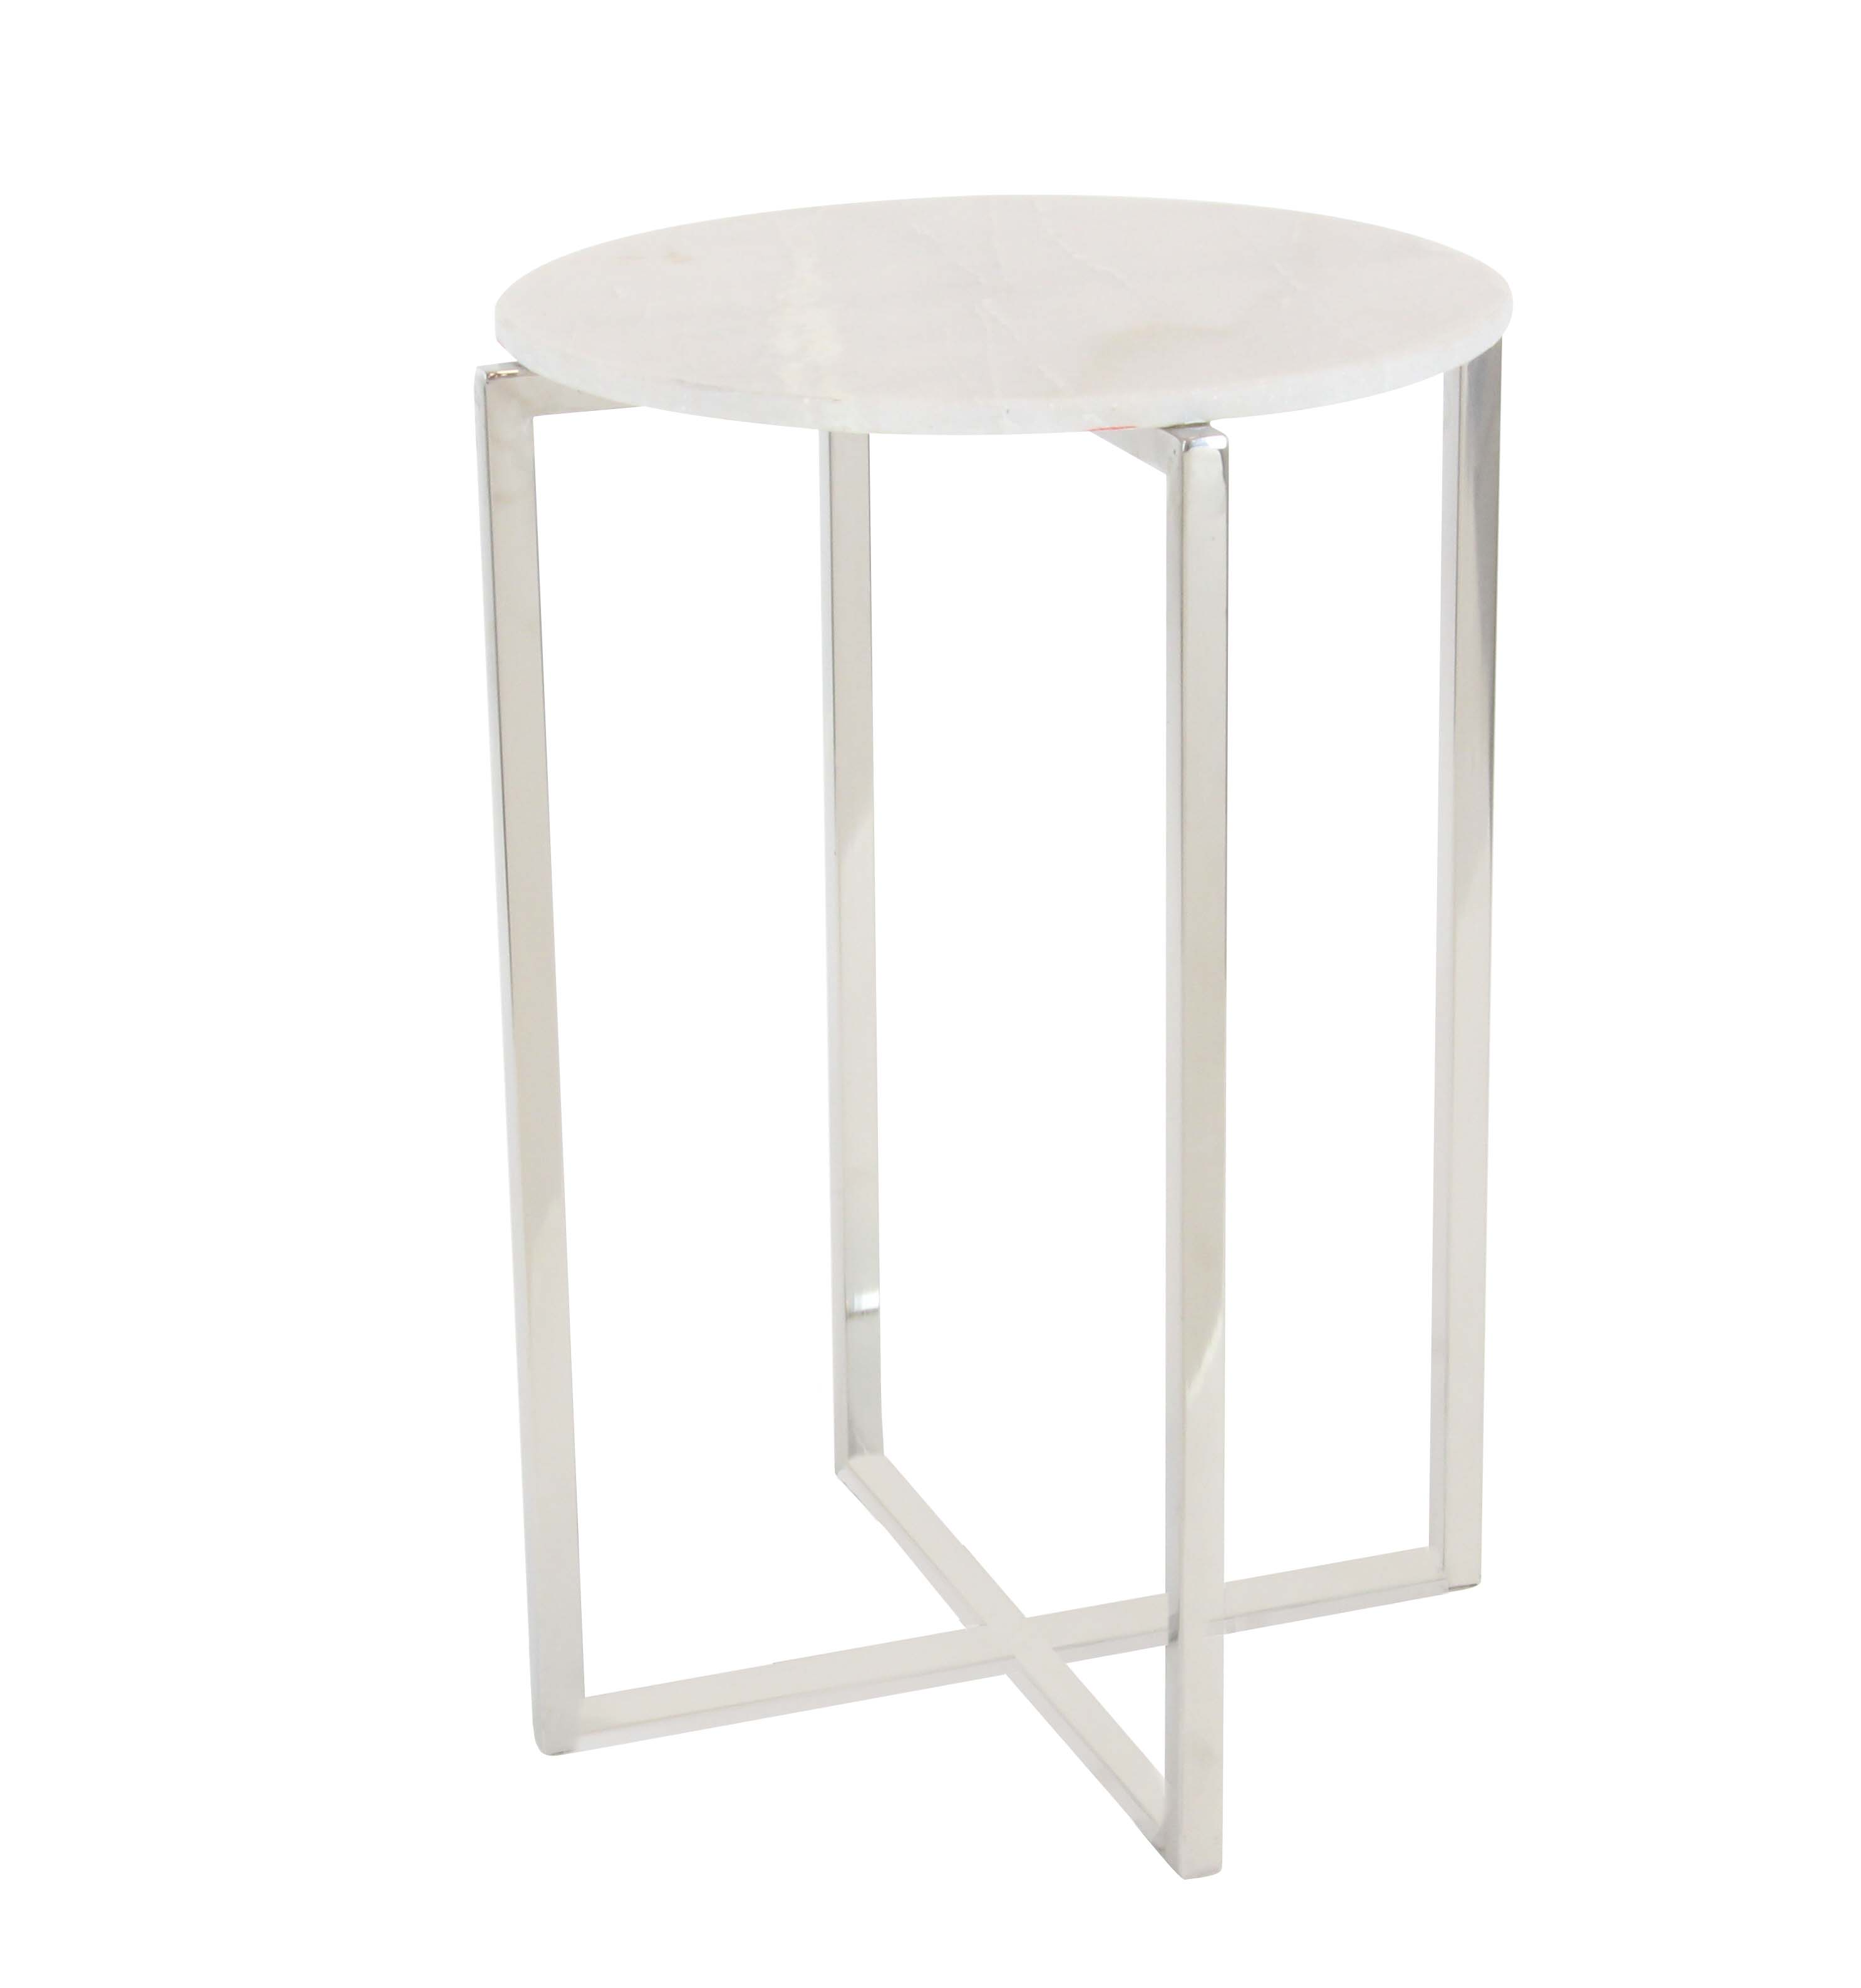 Decmode Modern 25 x 16 inch round stainless steel and marble accent table, White by DecMode